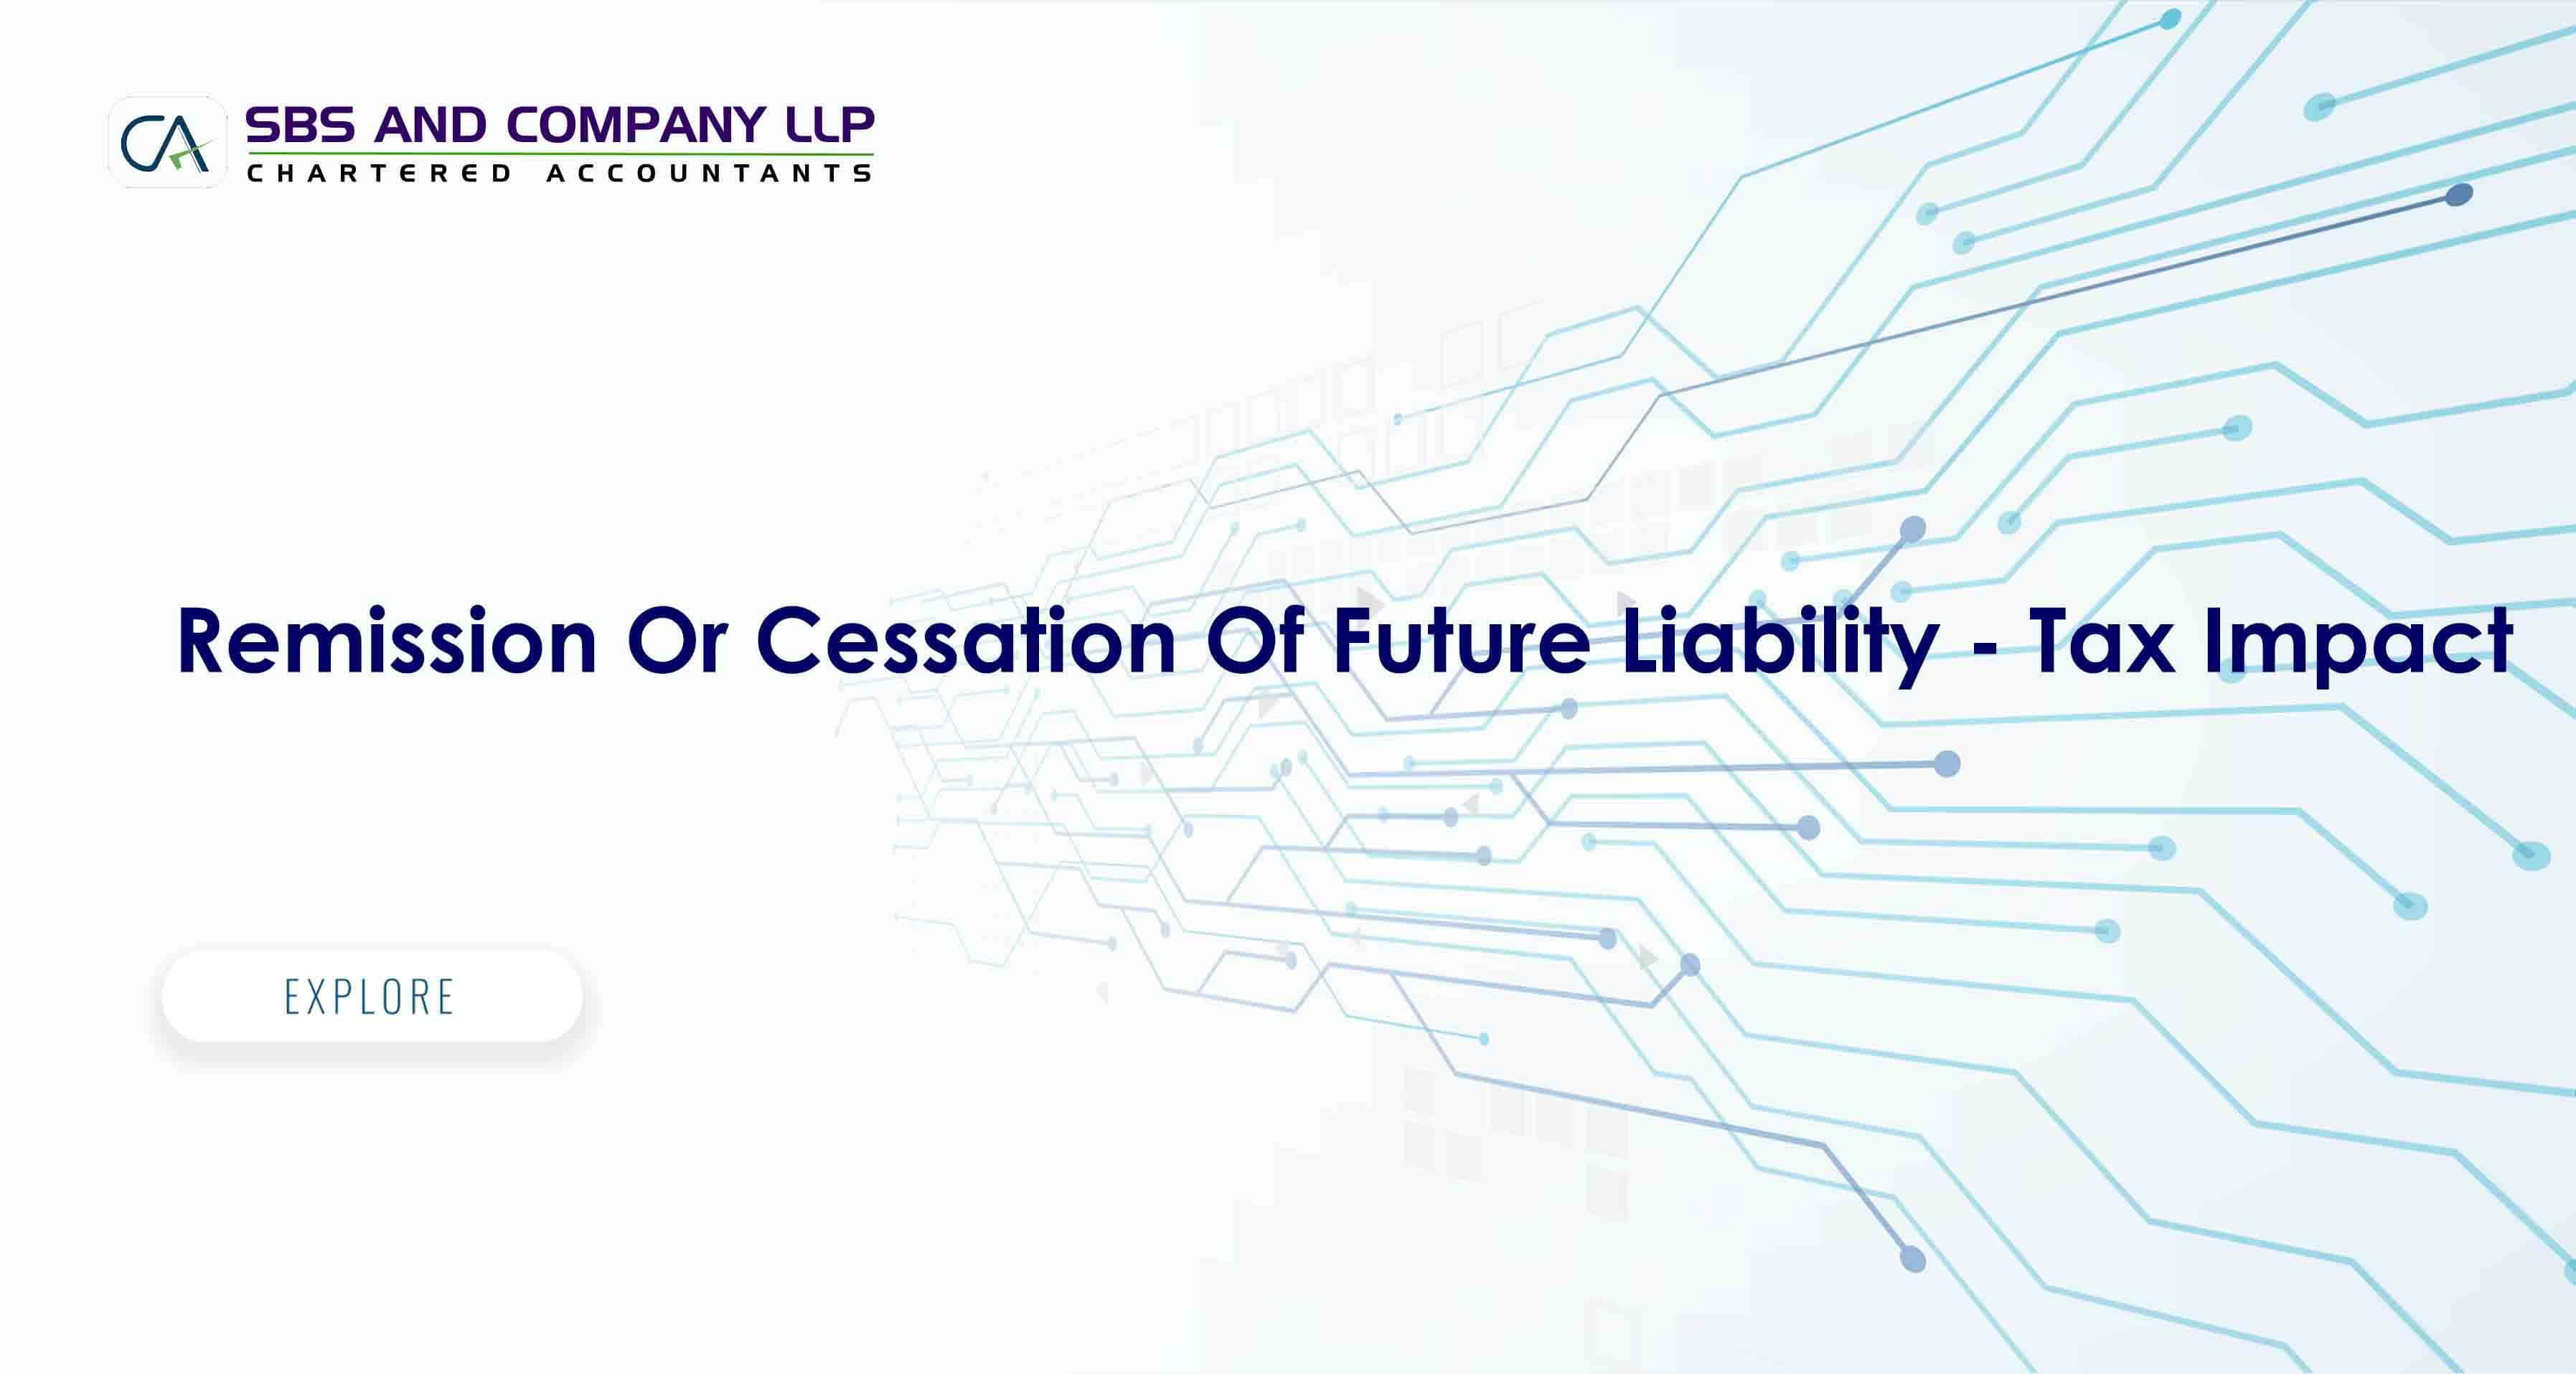 Remission Or Cessation Of Future Liability - Tax Impact